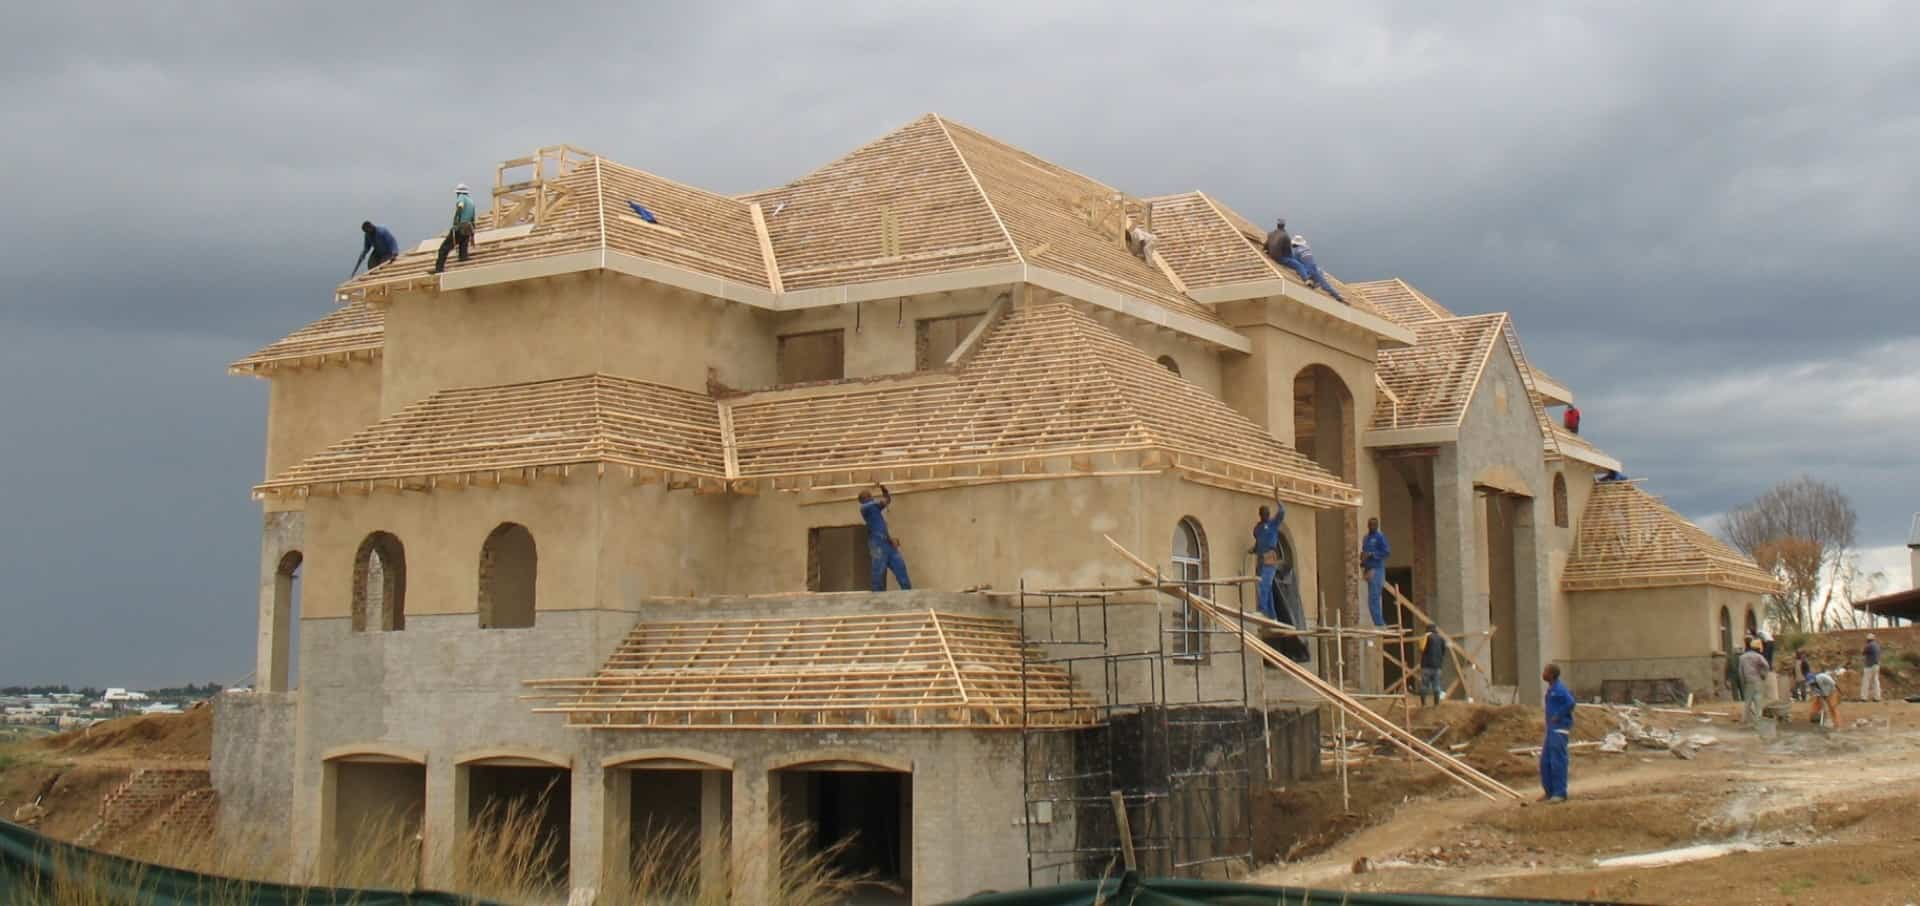 Roofing Ongoing